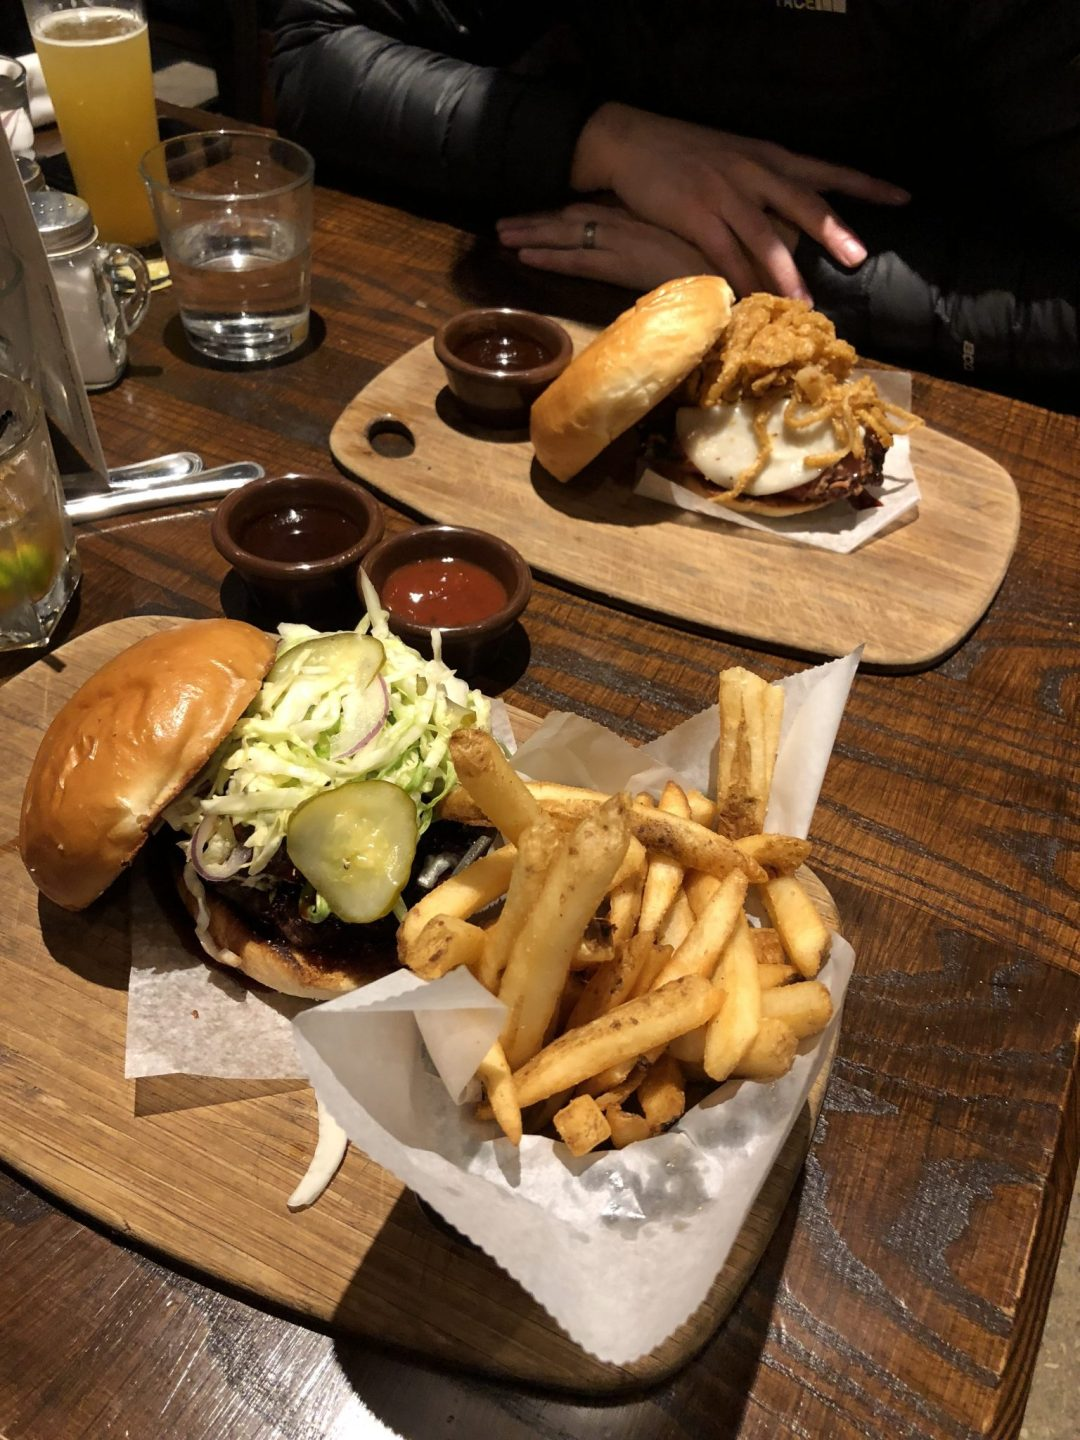 BBQ Sandwiches and Burgers